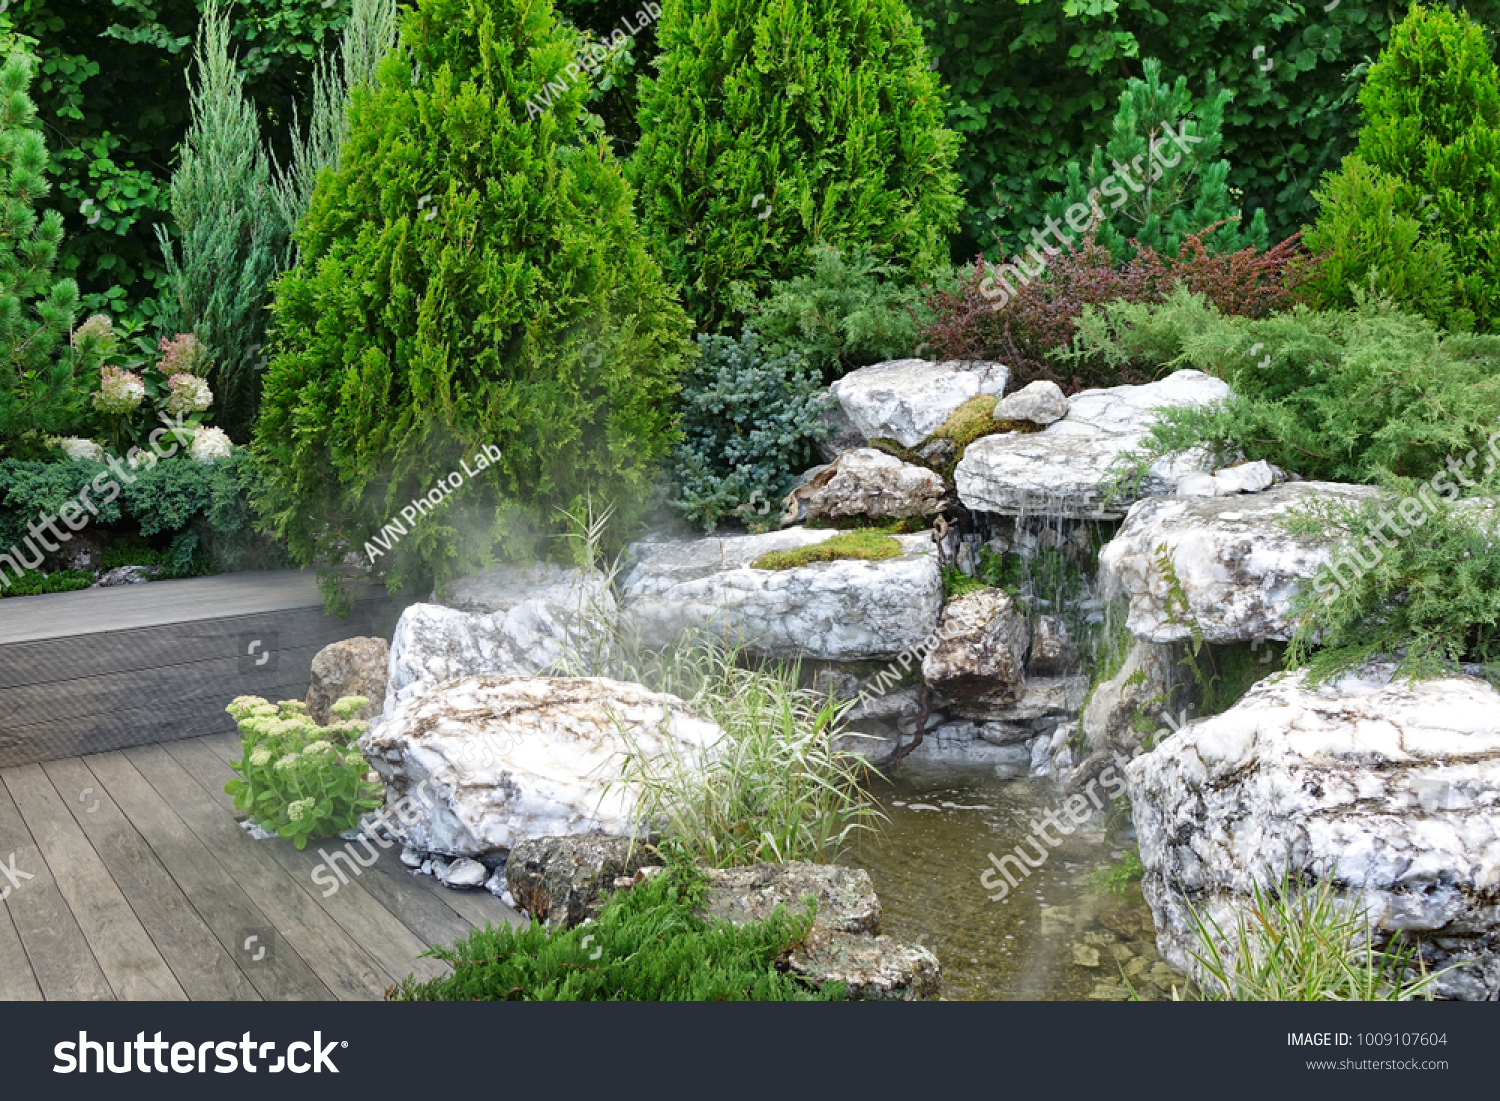 Artificial Tropical Pond Brook And Waterfall In Decorative Backyard Garden With Weatherproof Patio Floor